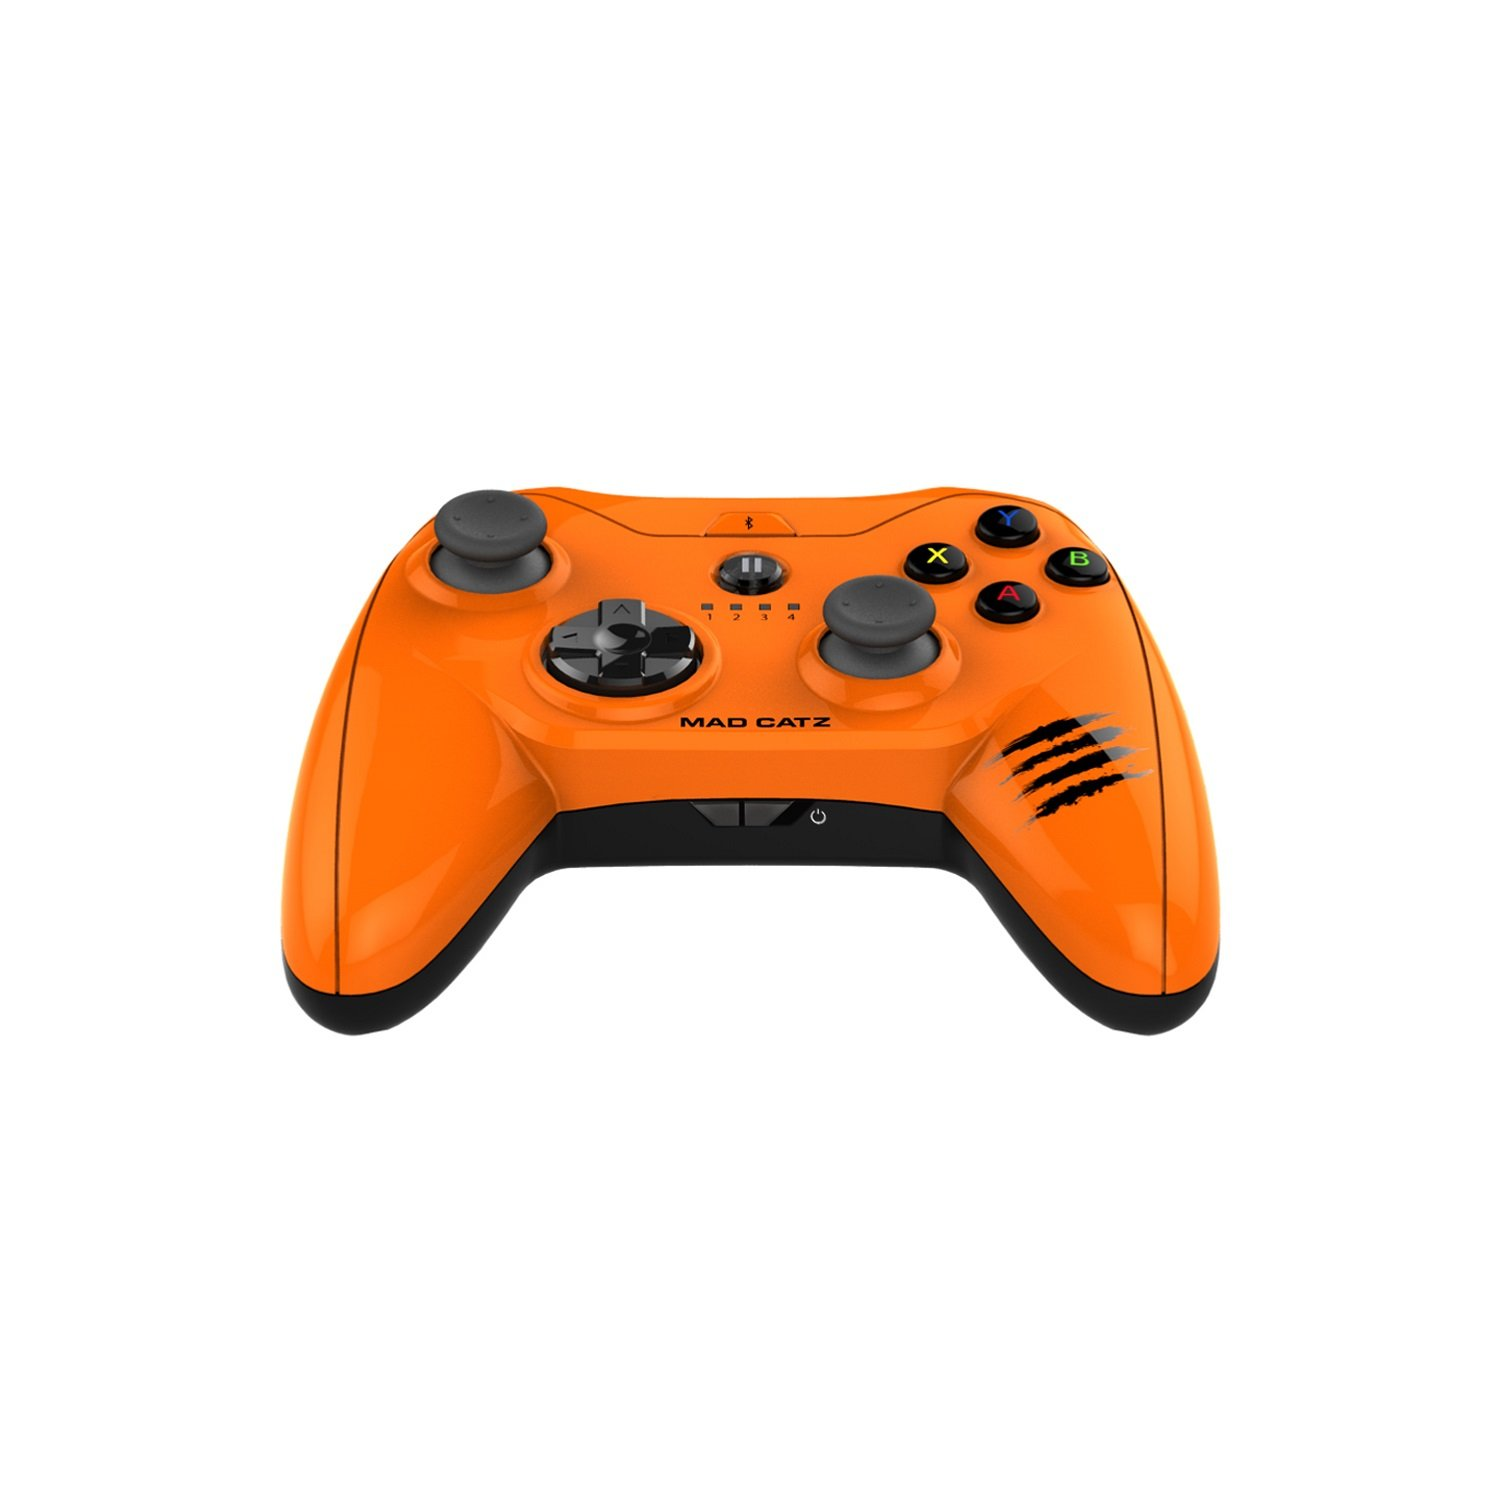 Mad Catz Micro C.T.R.L.i Mobile Gamepad Made for Apple IOS, Apple iPhone 7, iPod and iPad by Mad Catz (Image #3)